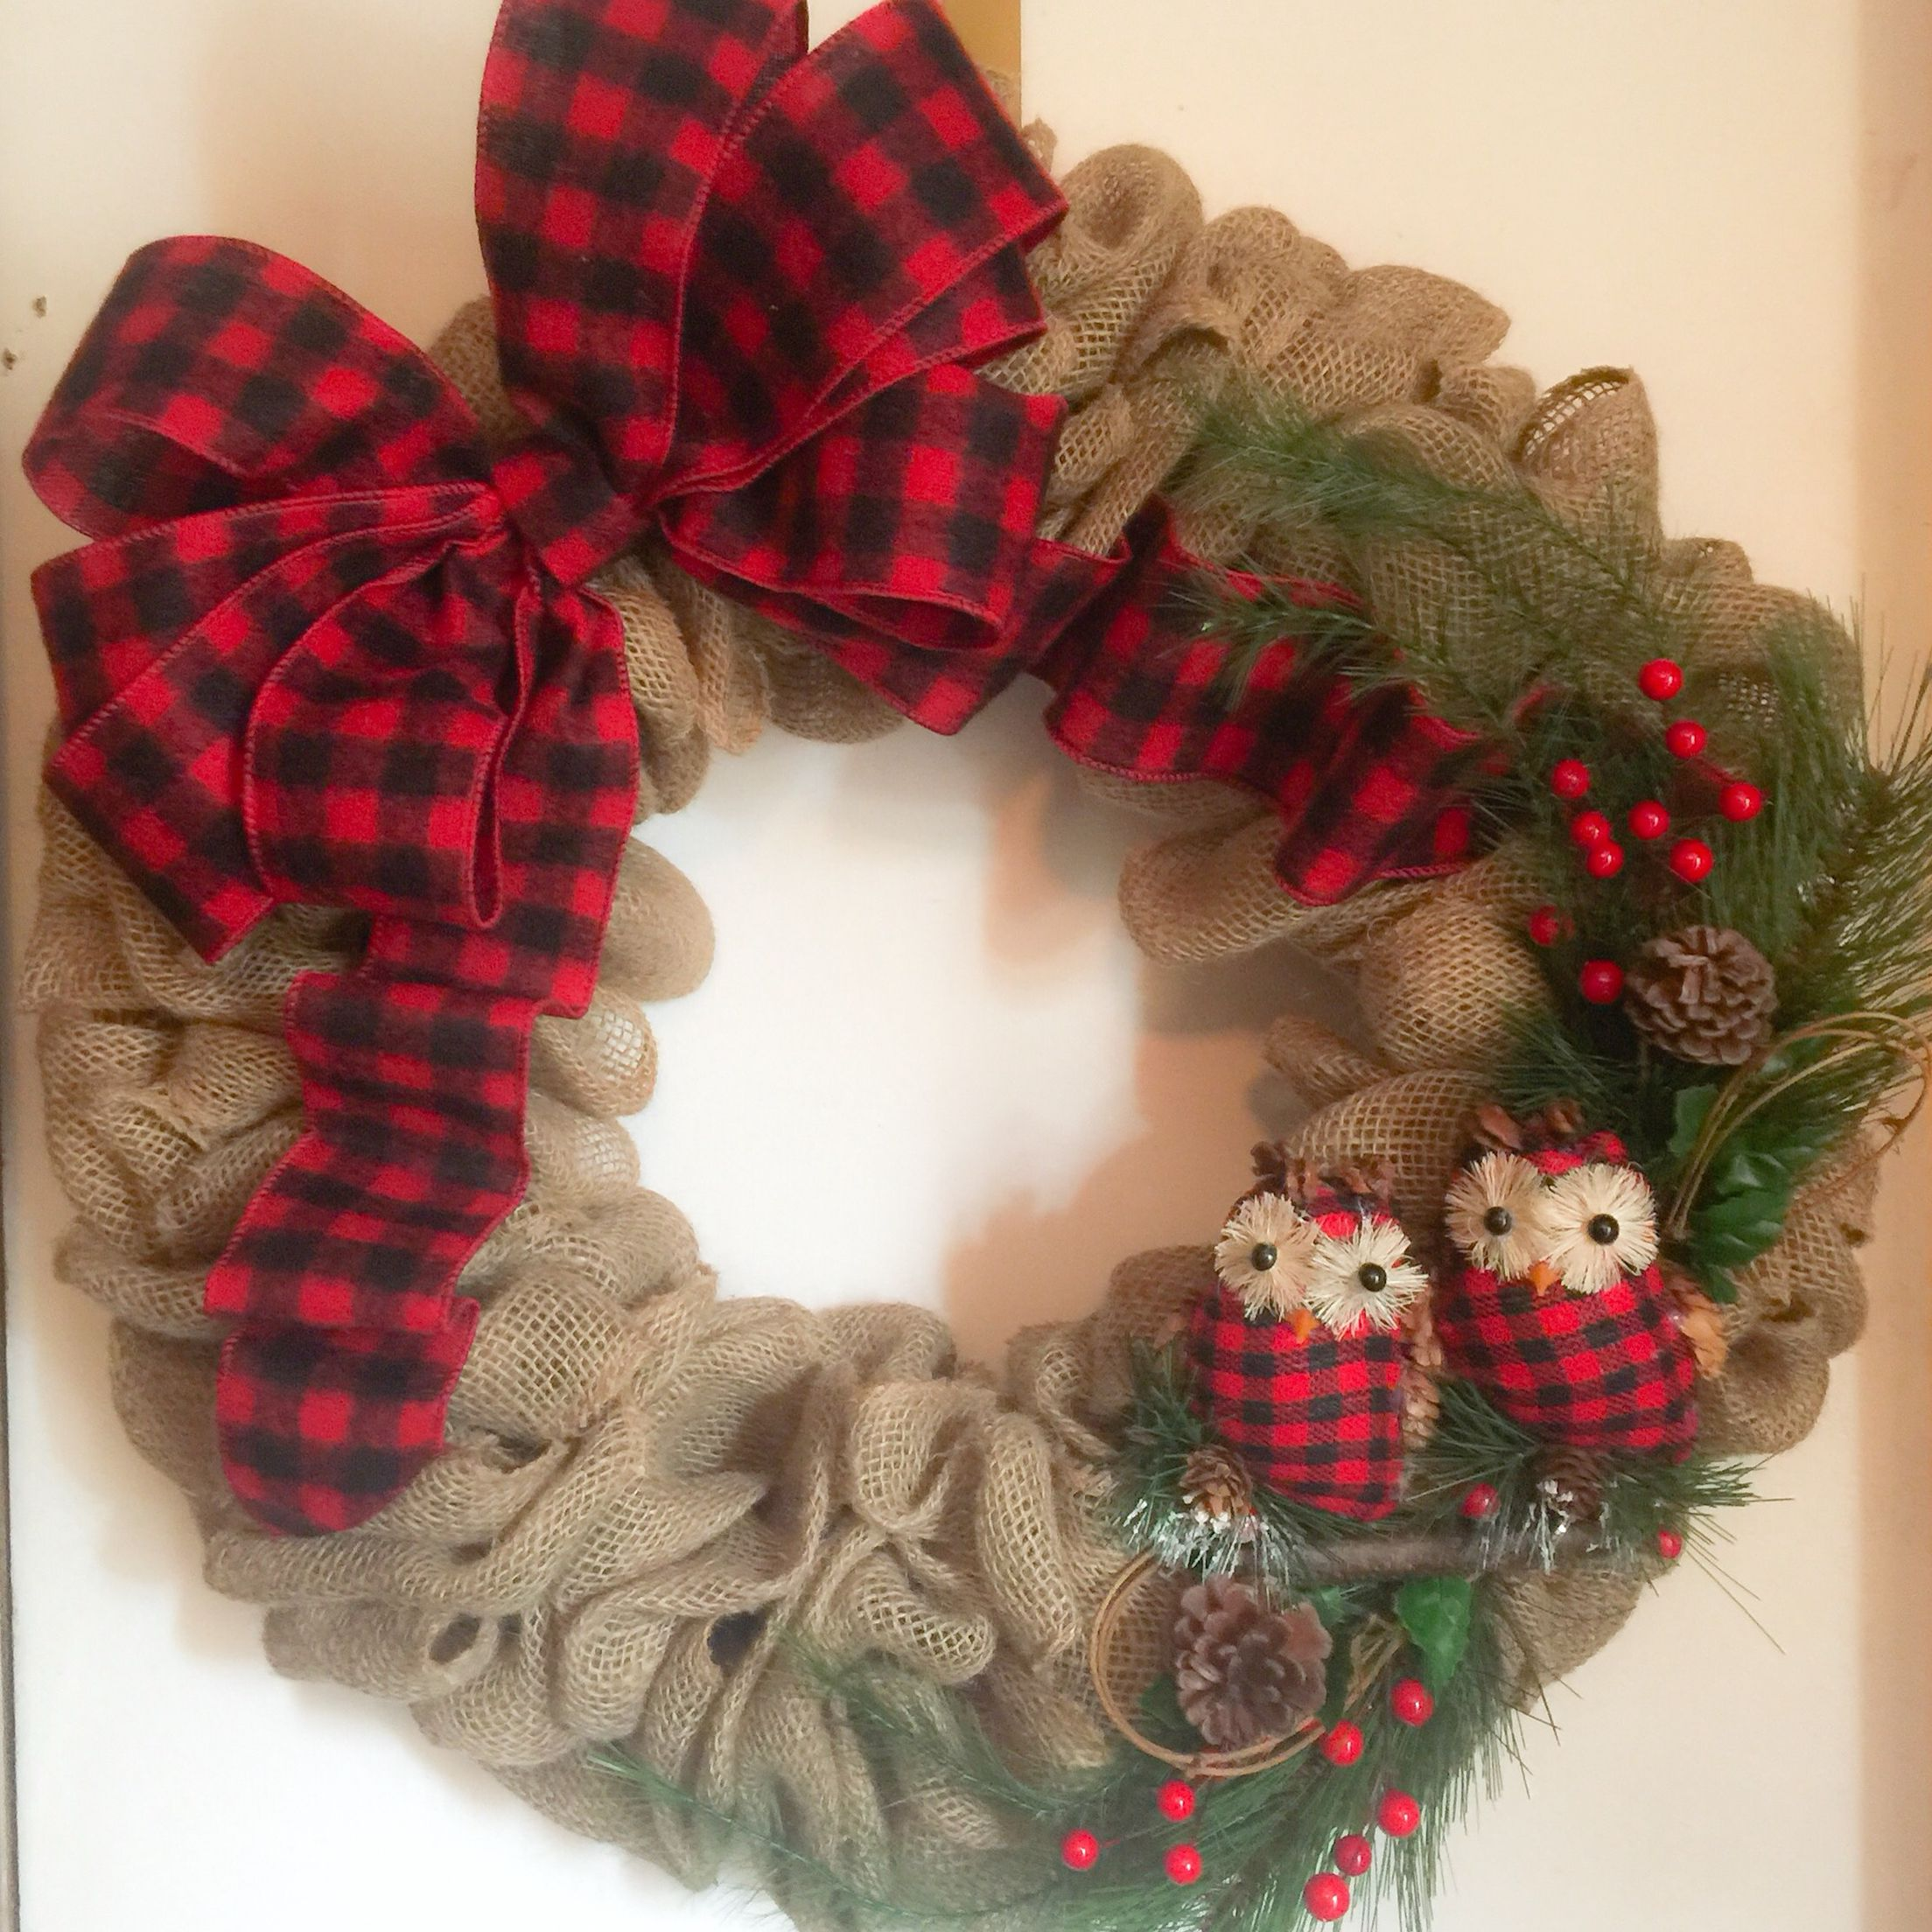 Christmas Burlap Owl Wreath With Red And Black Buffalo Plaid